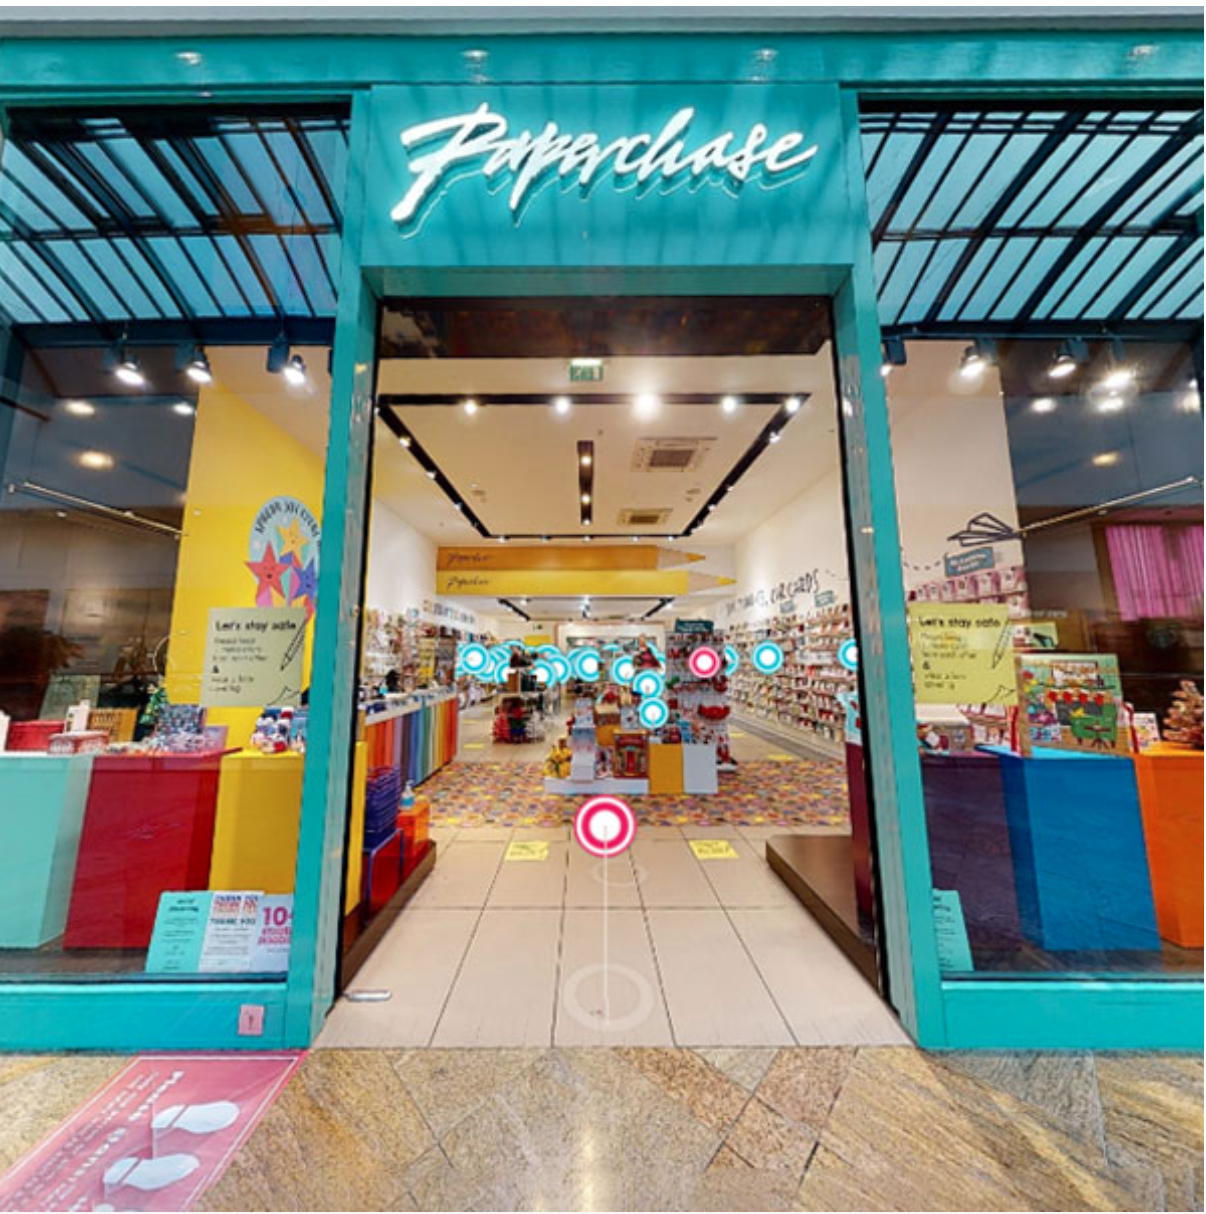 Above: While no Paperchase stores are able to trade right now, it has a 'virtual store' hosted on its website. (https://www.paperchase.com/the-journal/paperchase-virtual-store/)